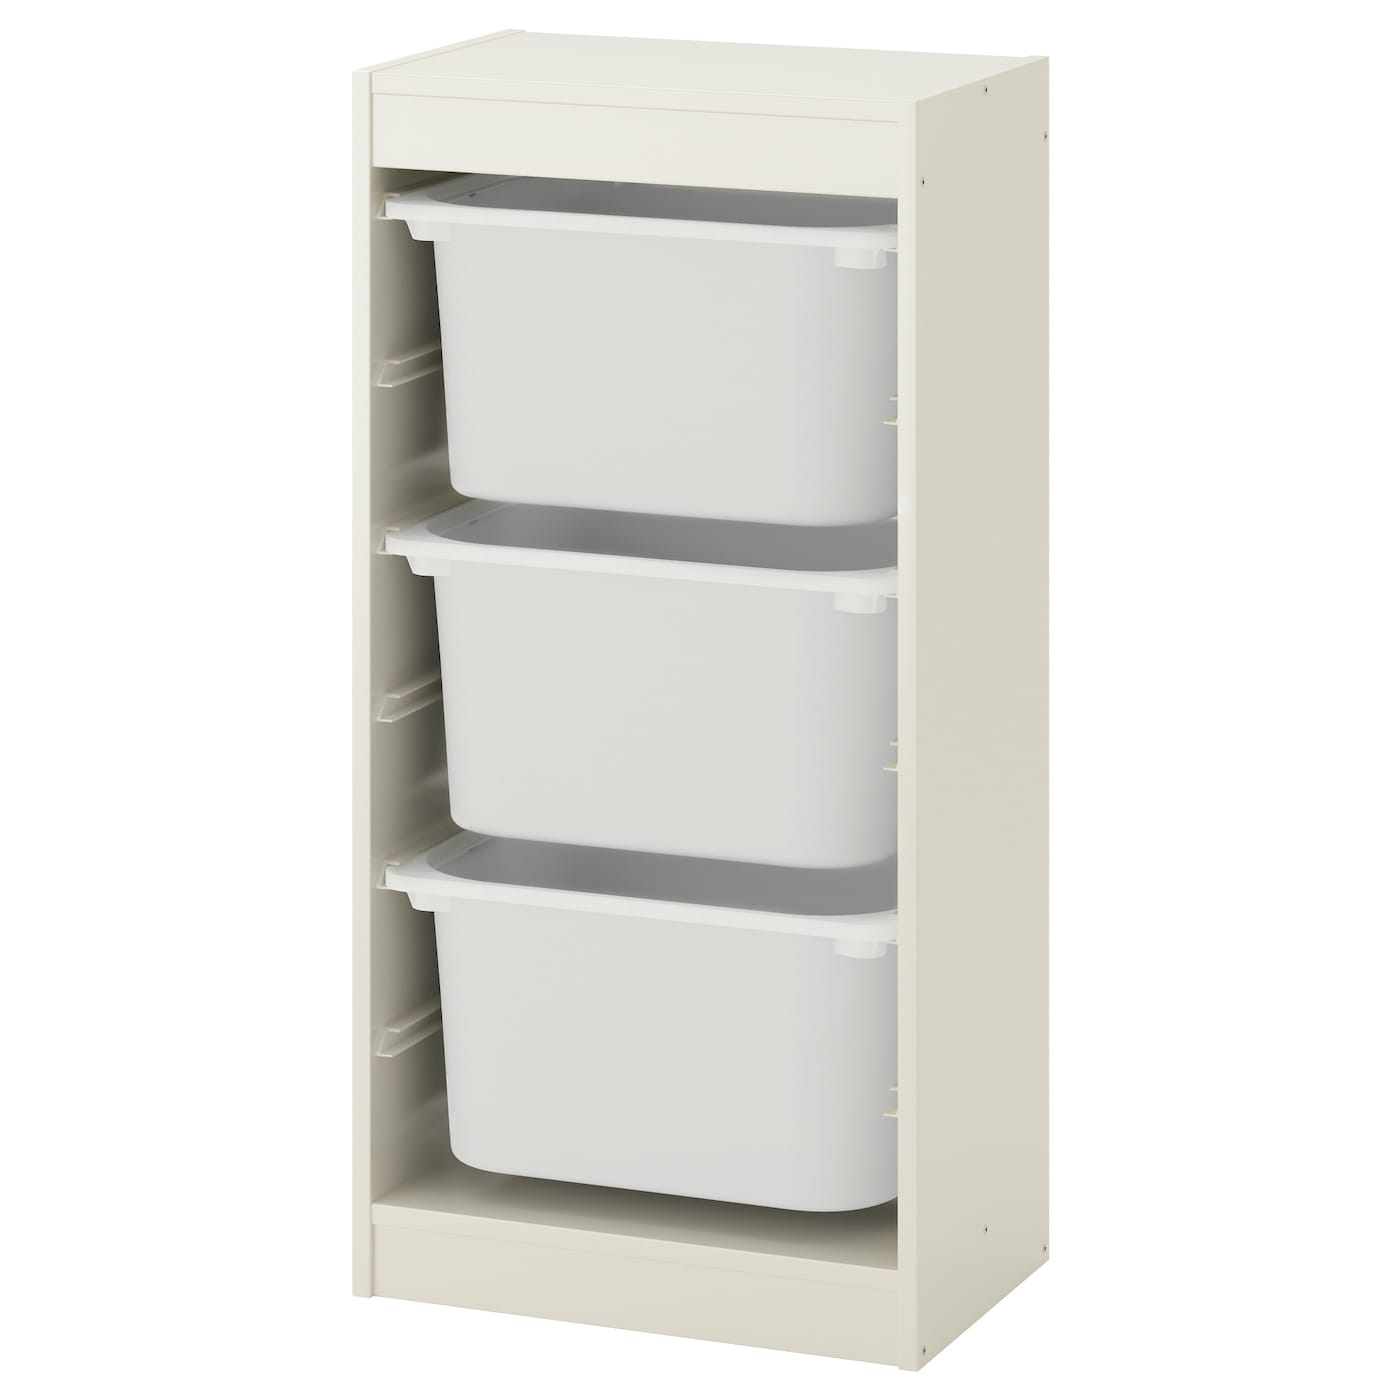 trofast storage combination with boxes white white 46x30x94 cm ikea. Black Bedroom Furniture Sets. Home Design Ideas